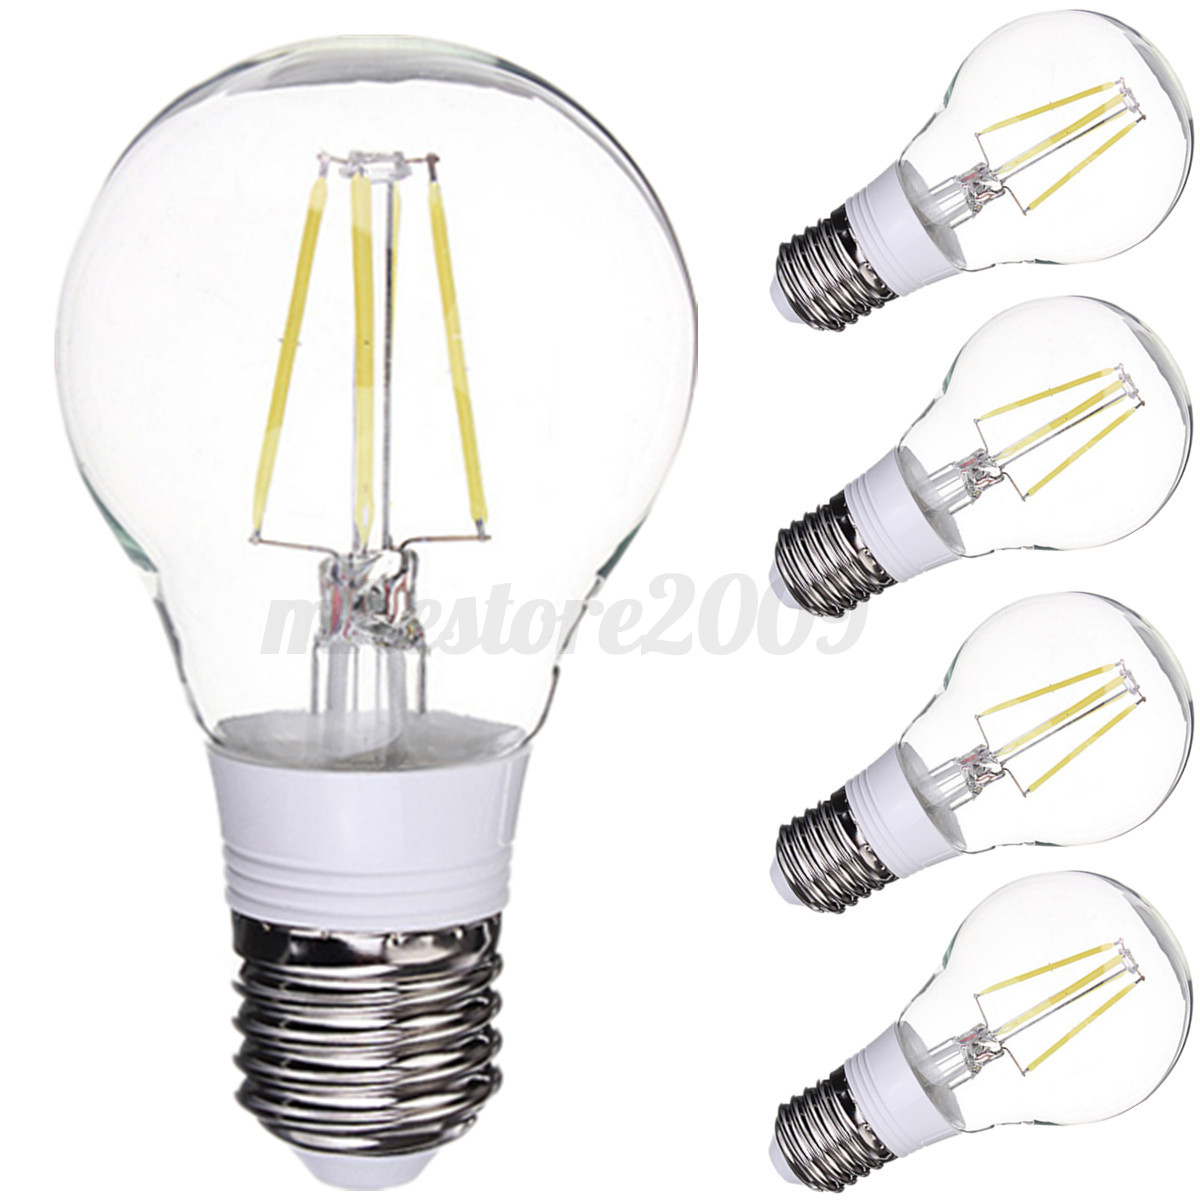 e27 e14 gu10 g9 5 6 7 9 12 15 40w 5730 led smd ampoule lampe bulbs globe edison ebay. Black Bedroom Furniture Sets. Home Design Ideas